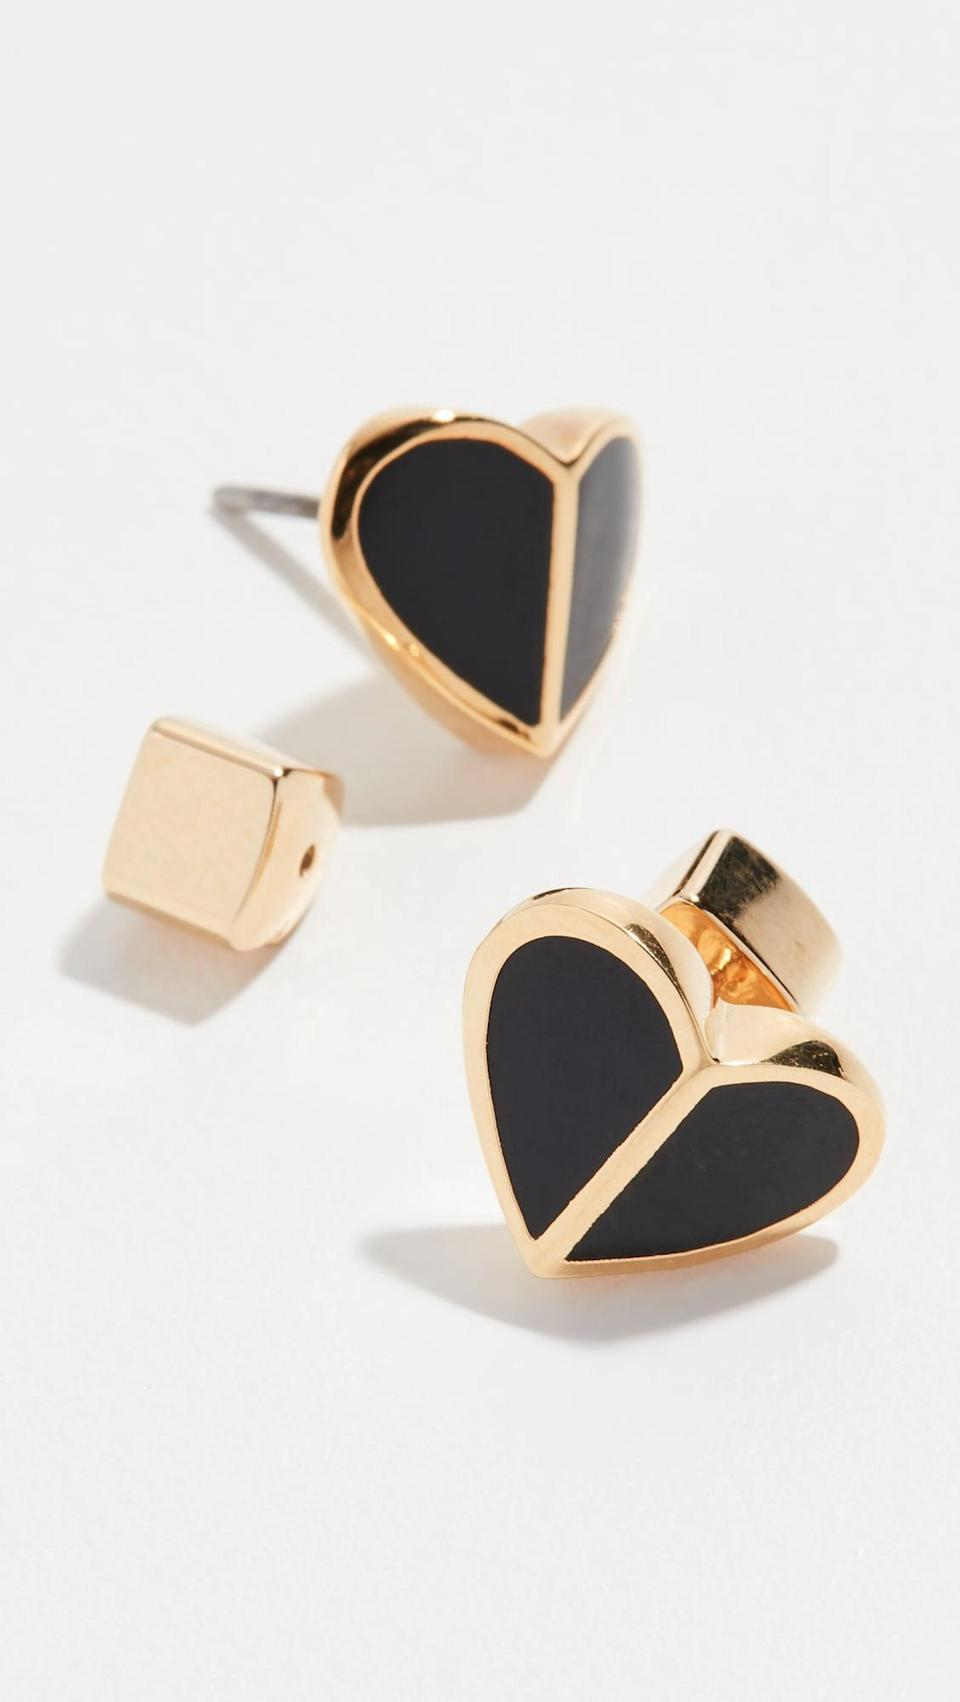 <p>Available in six colors, these <span>Kate Spade Heritage Spade Heart Earrings</span> ($34, originally $48) are simply love at first sight.</p>